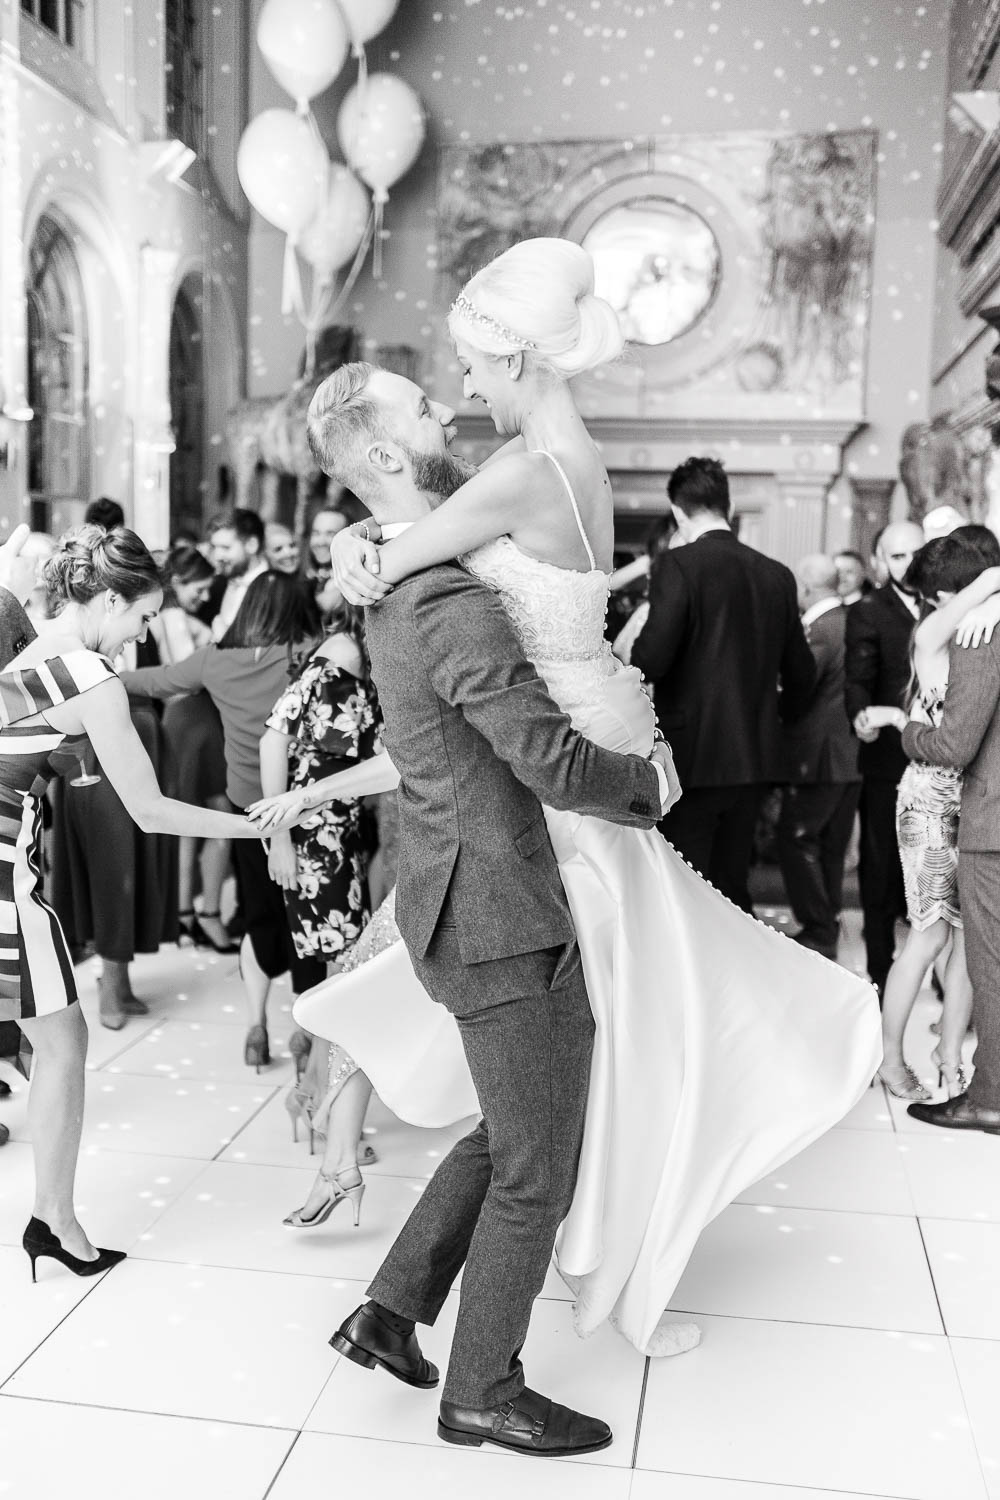 Aynhoe Park Wedding Photography. Wedding Reception at Aynhoe Park